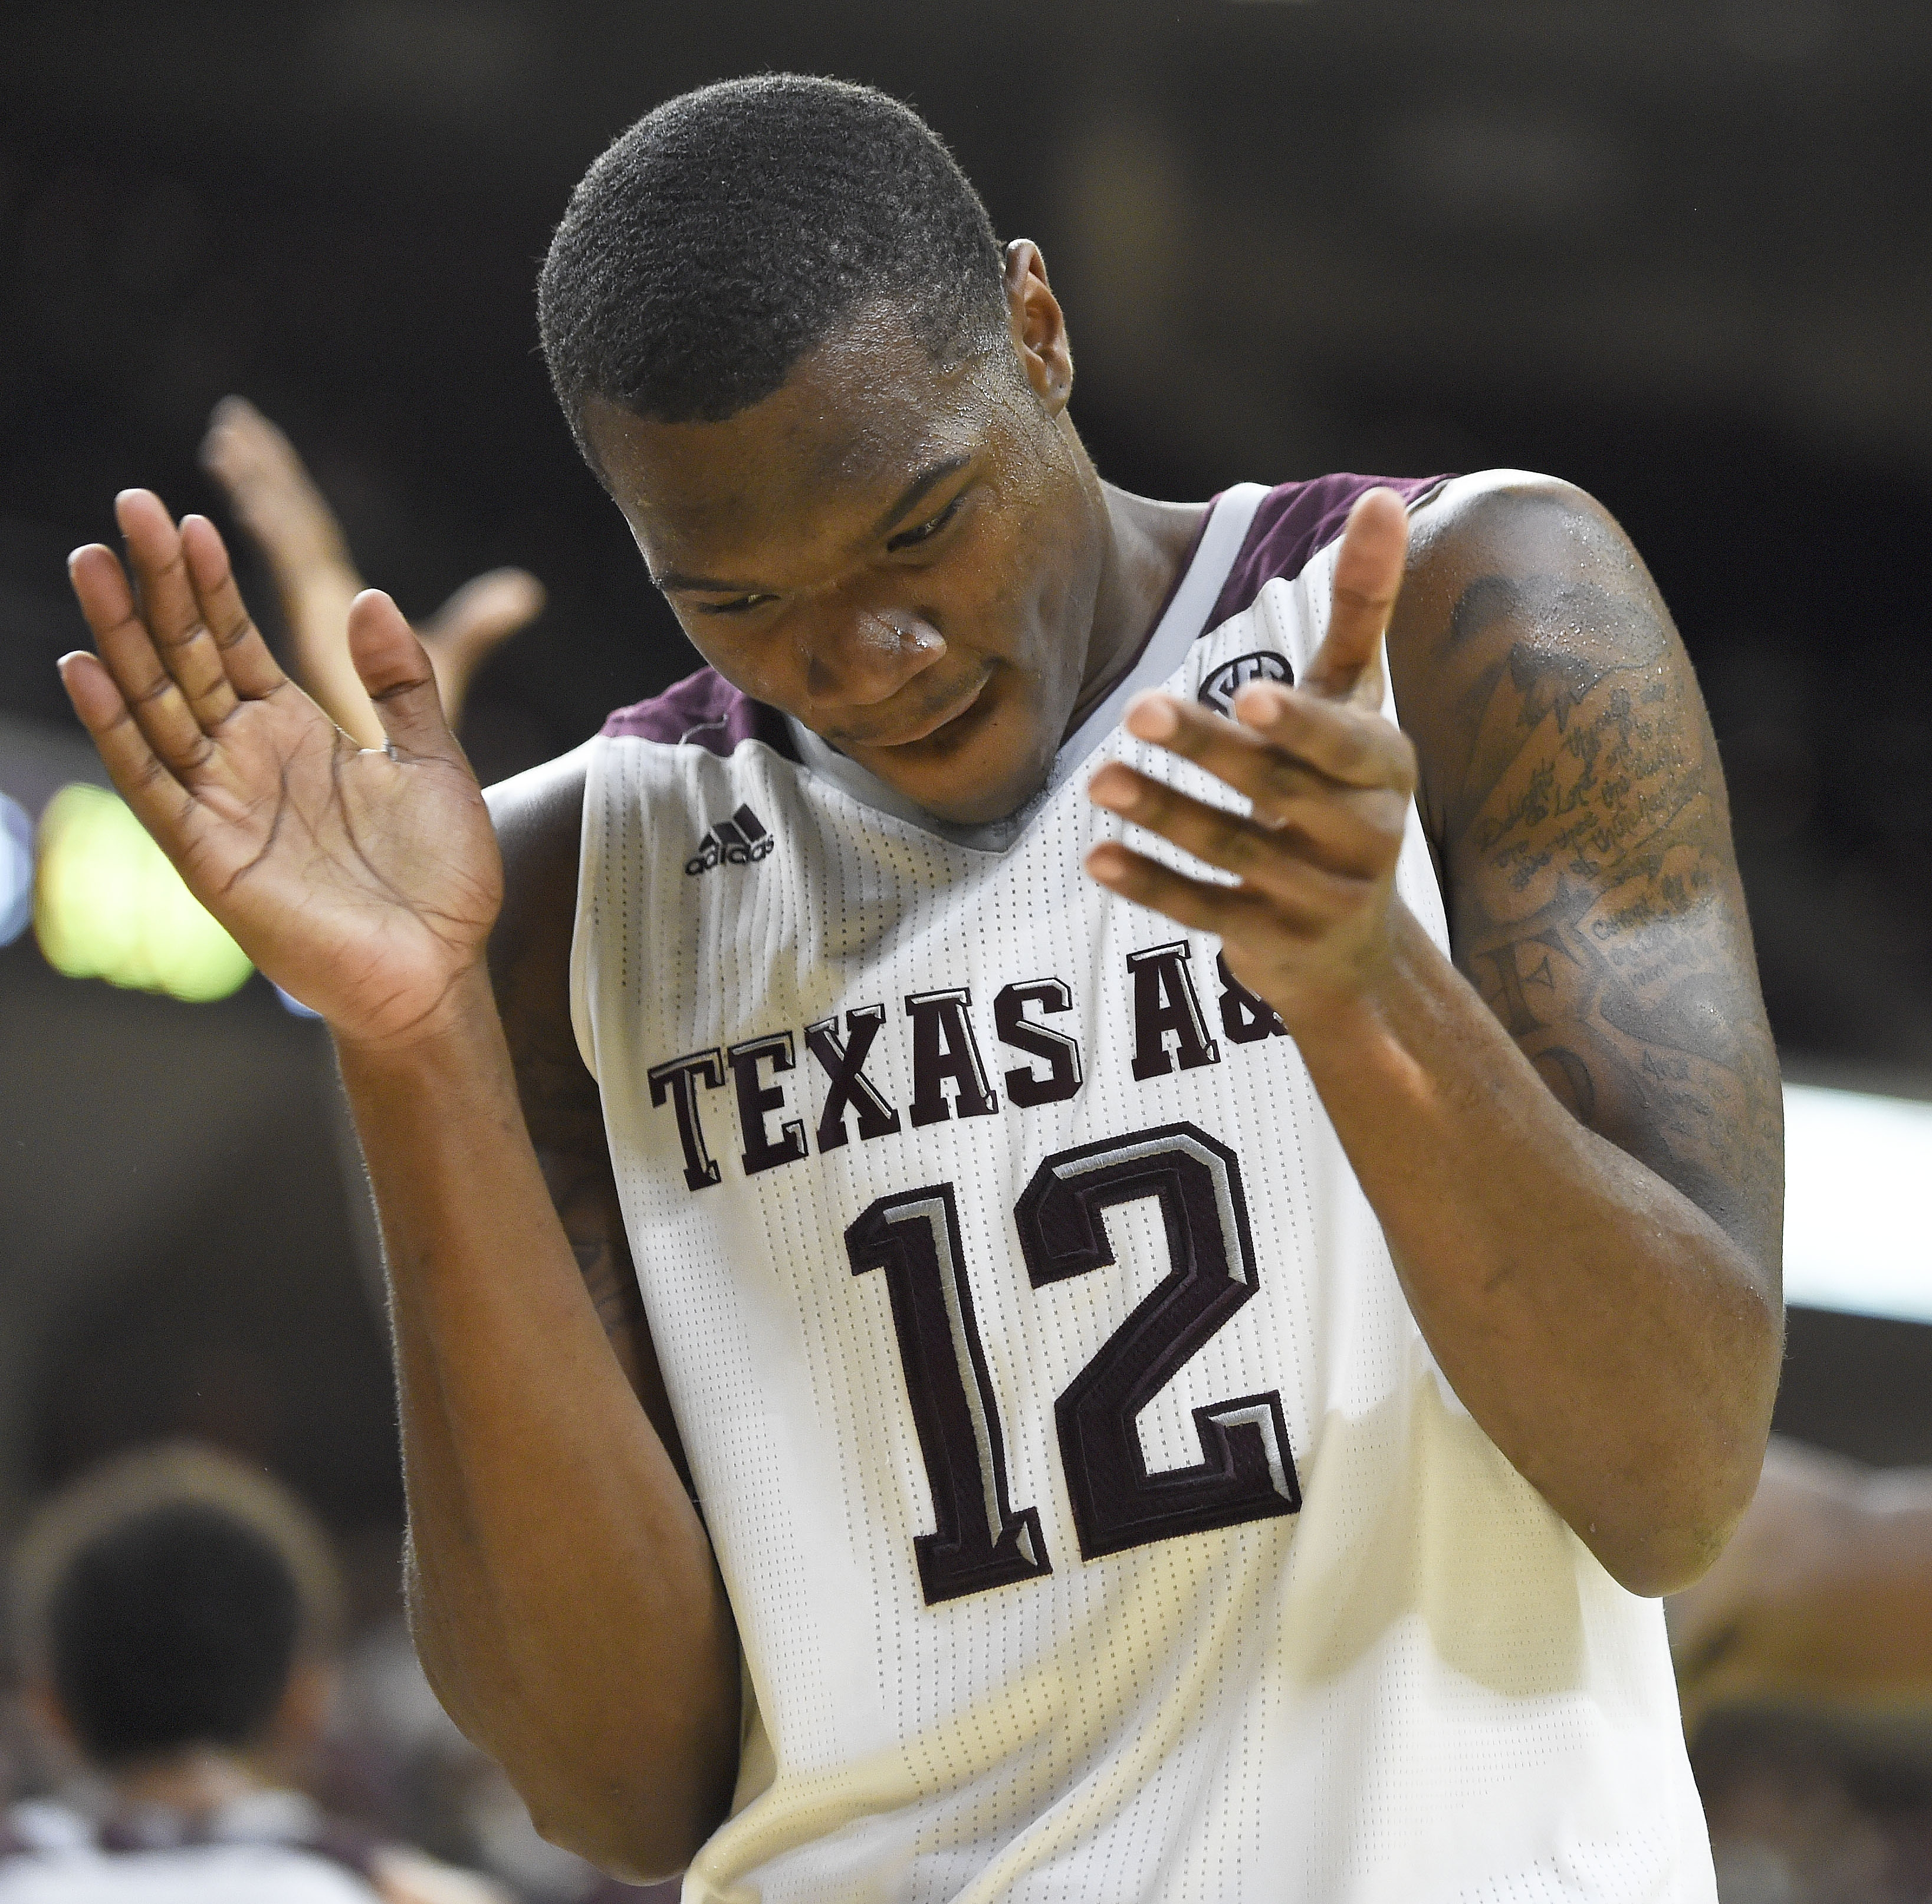 Texas A&M guard Jalen Jones (12) reacts after a Baylor turnover during the second half of an NCAA college basketball game Saturday, Dec. 19, 2015, in College Station, Texas. Texas A&M won 80-61. (AP Photo/Eric Christian Smith)